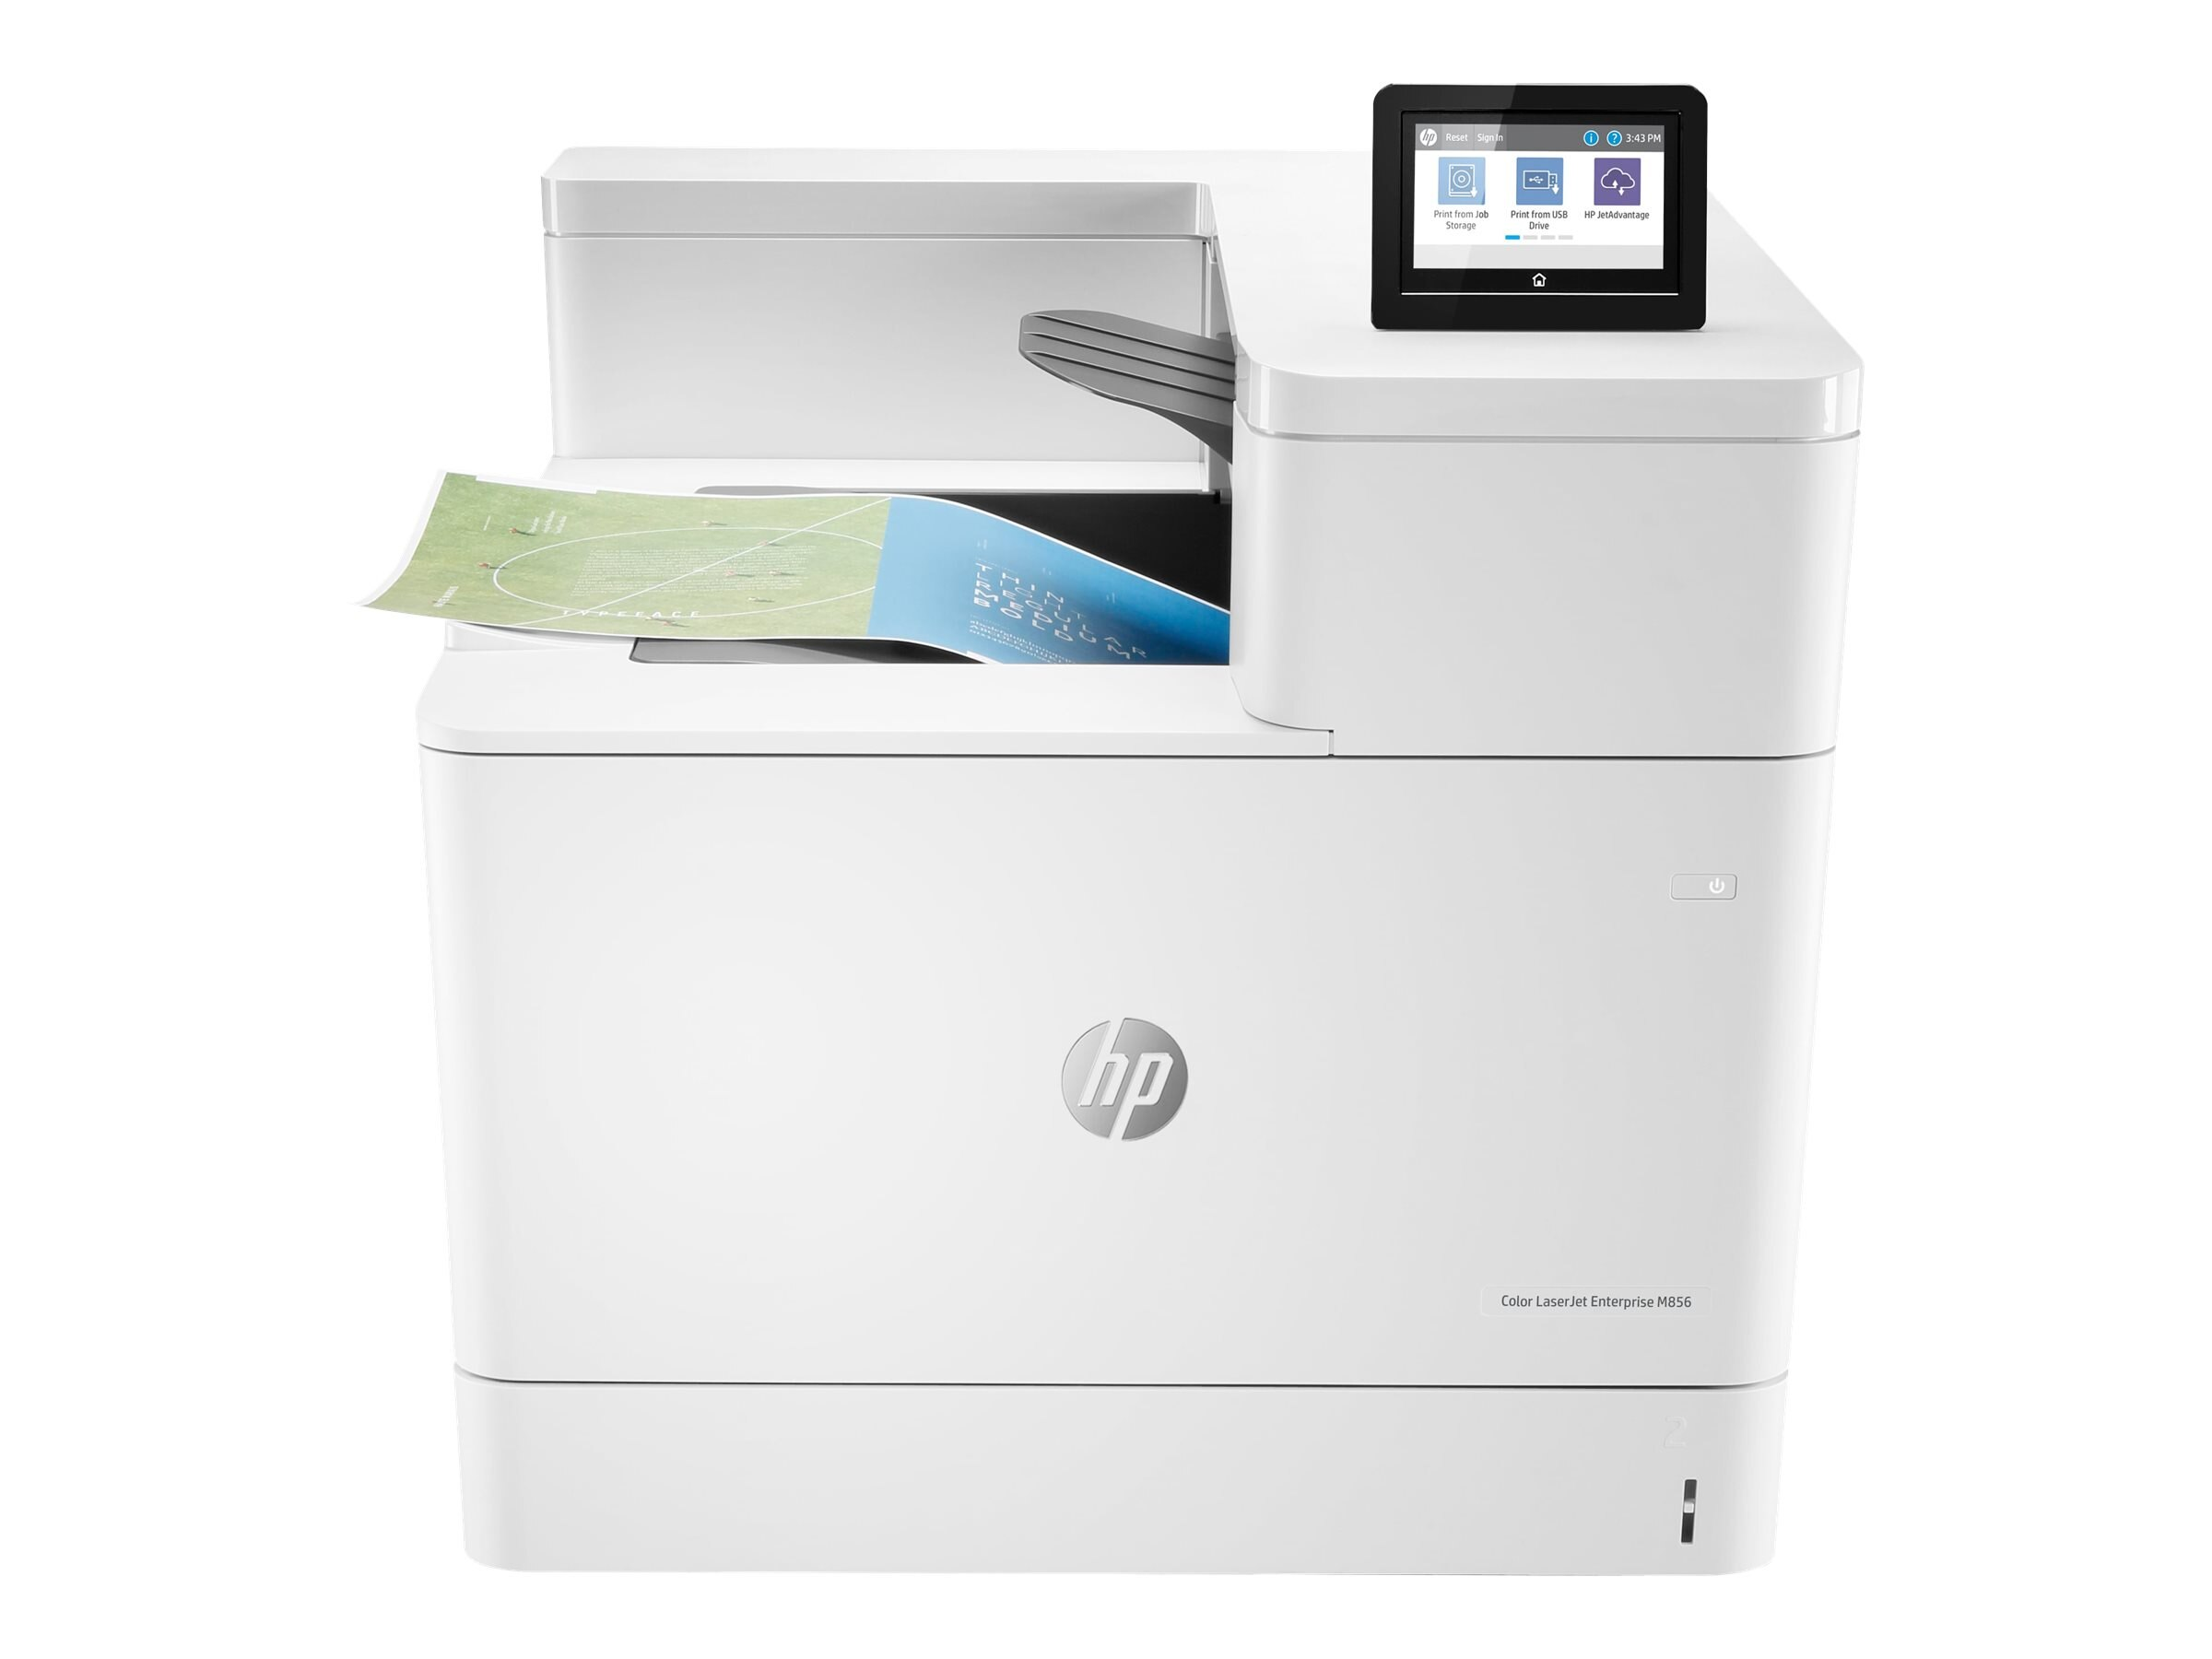 HP Color LaserJet Enterprise M856dn Printer (T3U51A)